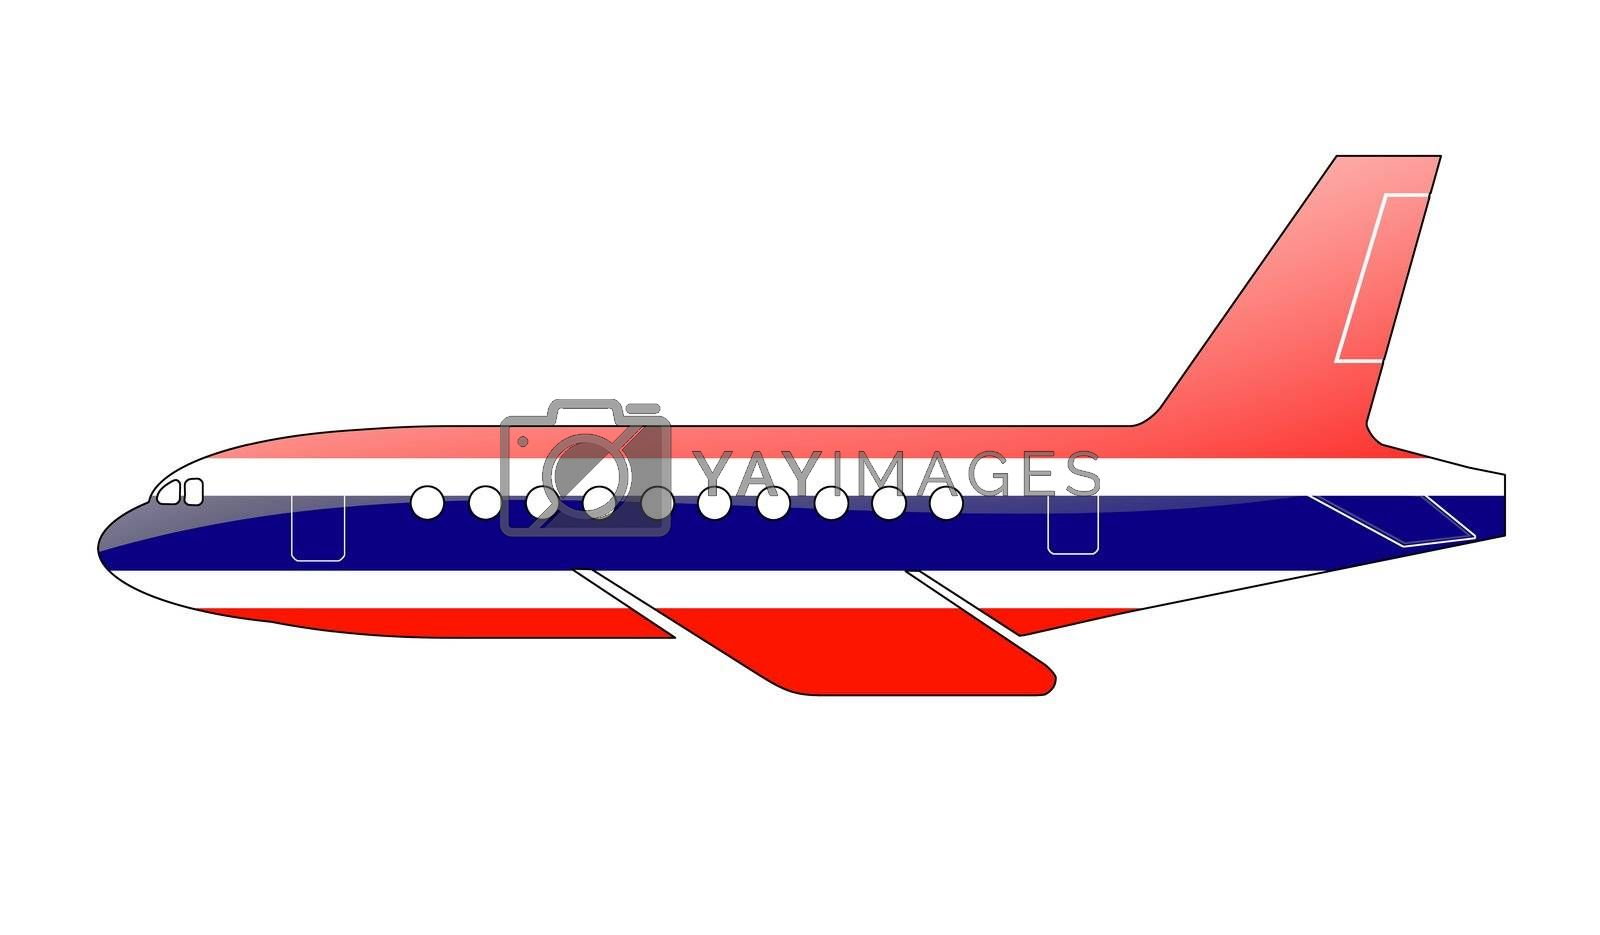 The Thai flag painted on the silhouette of a aircraft. glossy illustration